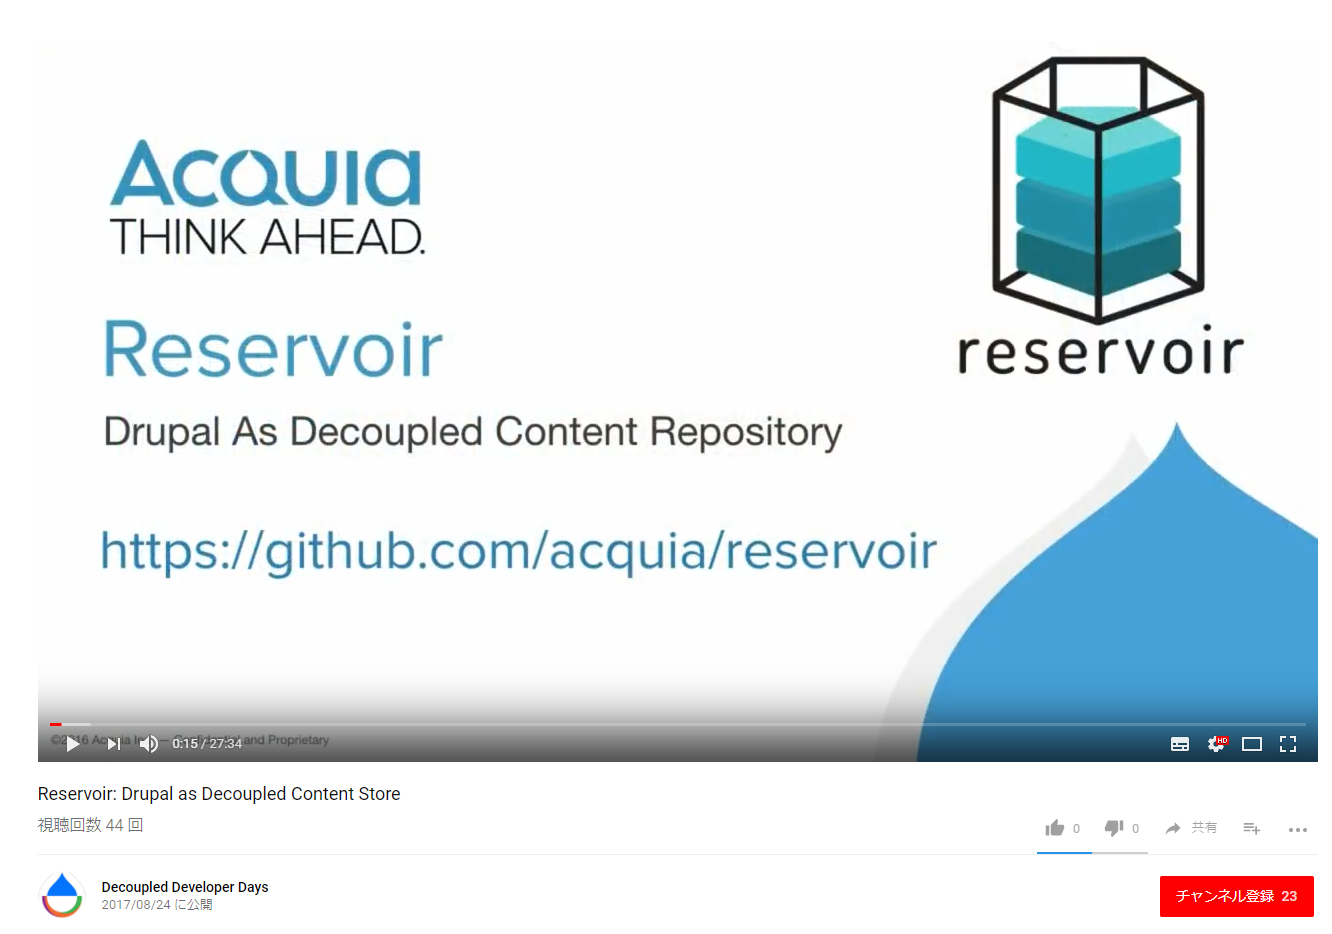 Reservoir: Drupal as Decoupled Content Store